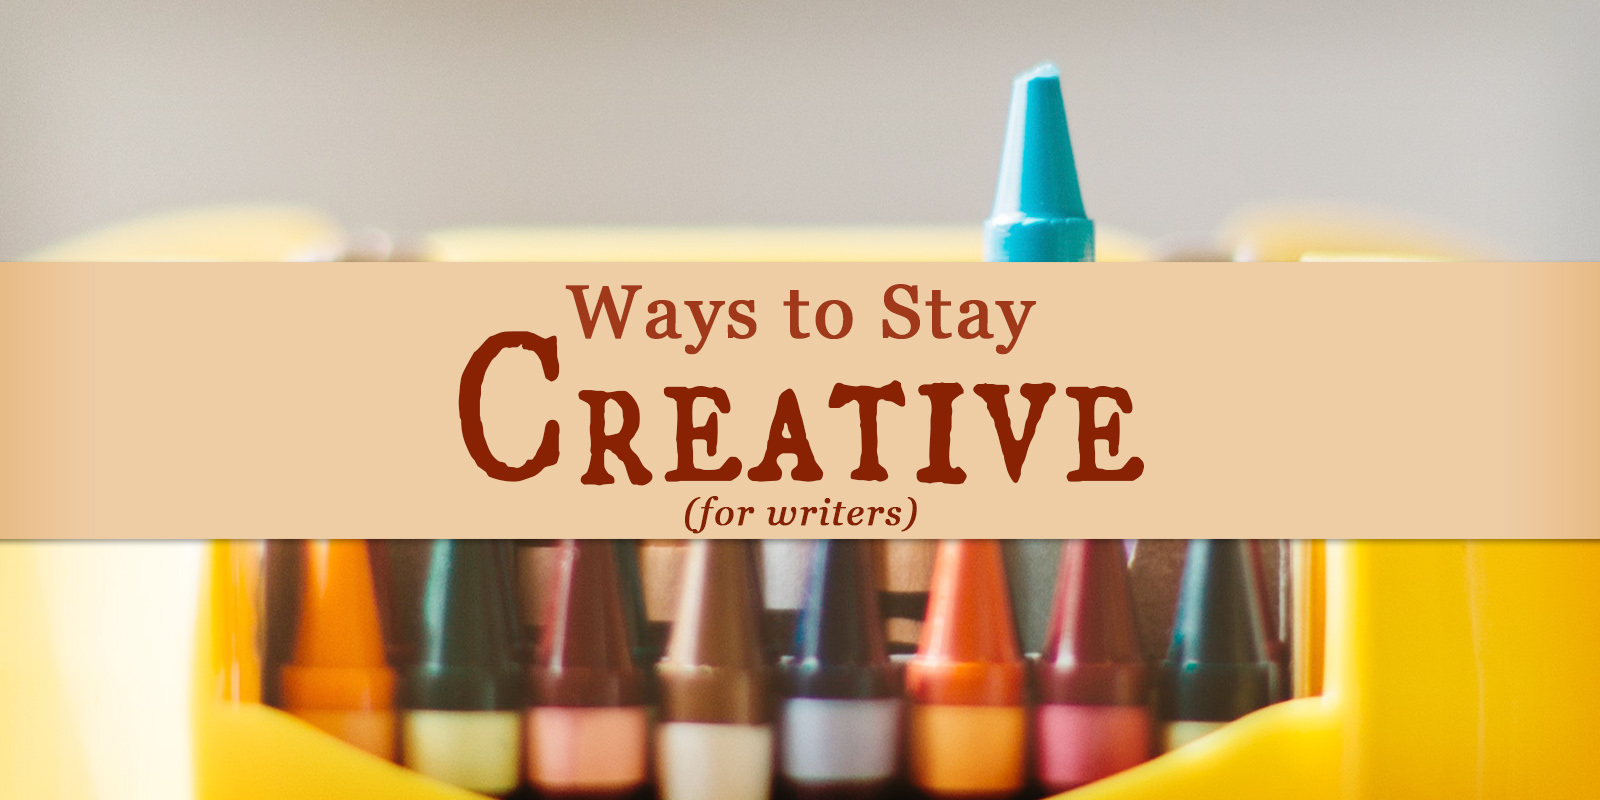 It's a challenge to stay creative. Are you looking for ways to recharge your batteries, and infuse yourself with renewed energy and zeal?